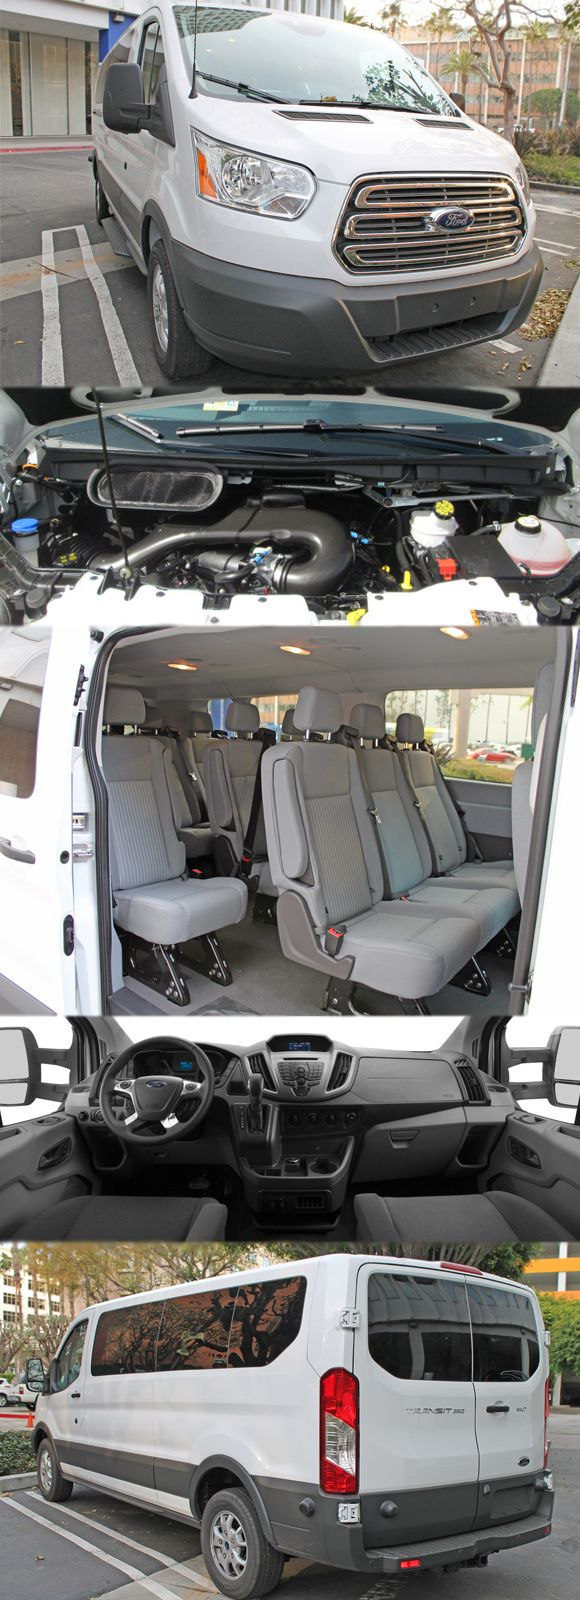 Ford tourneo courier pictures to pin on pinterest - Ford Transit 350 Xlt To Give A Shout Out Get More Details At Http